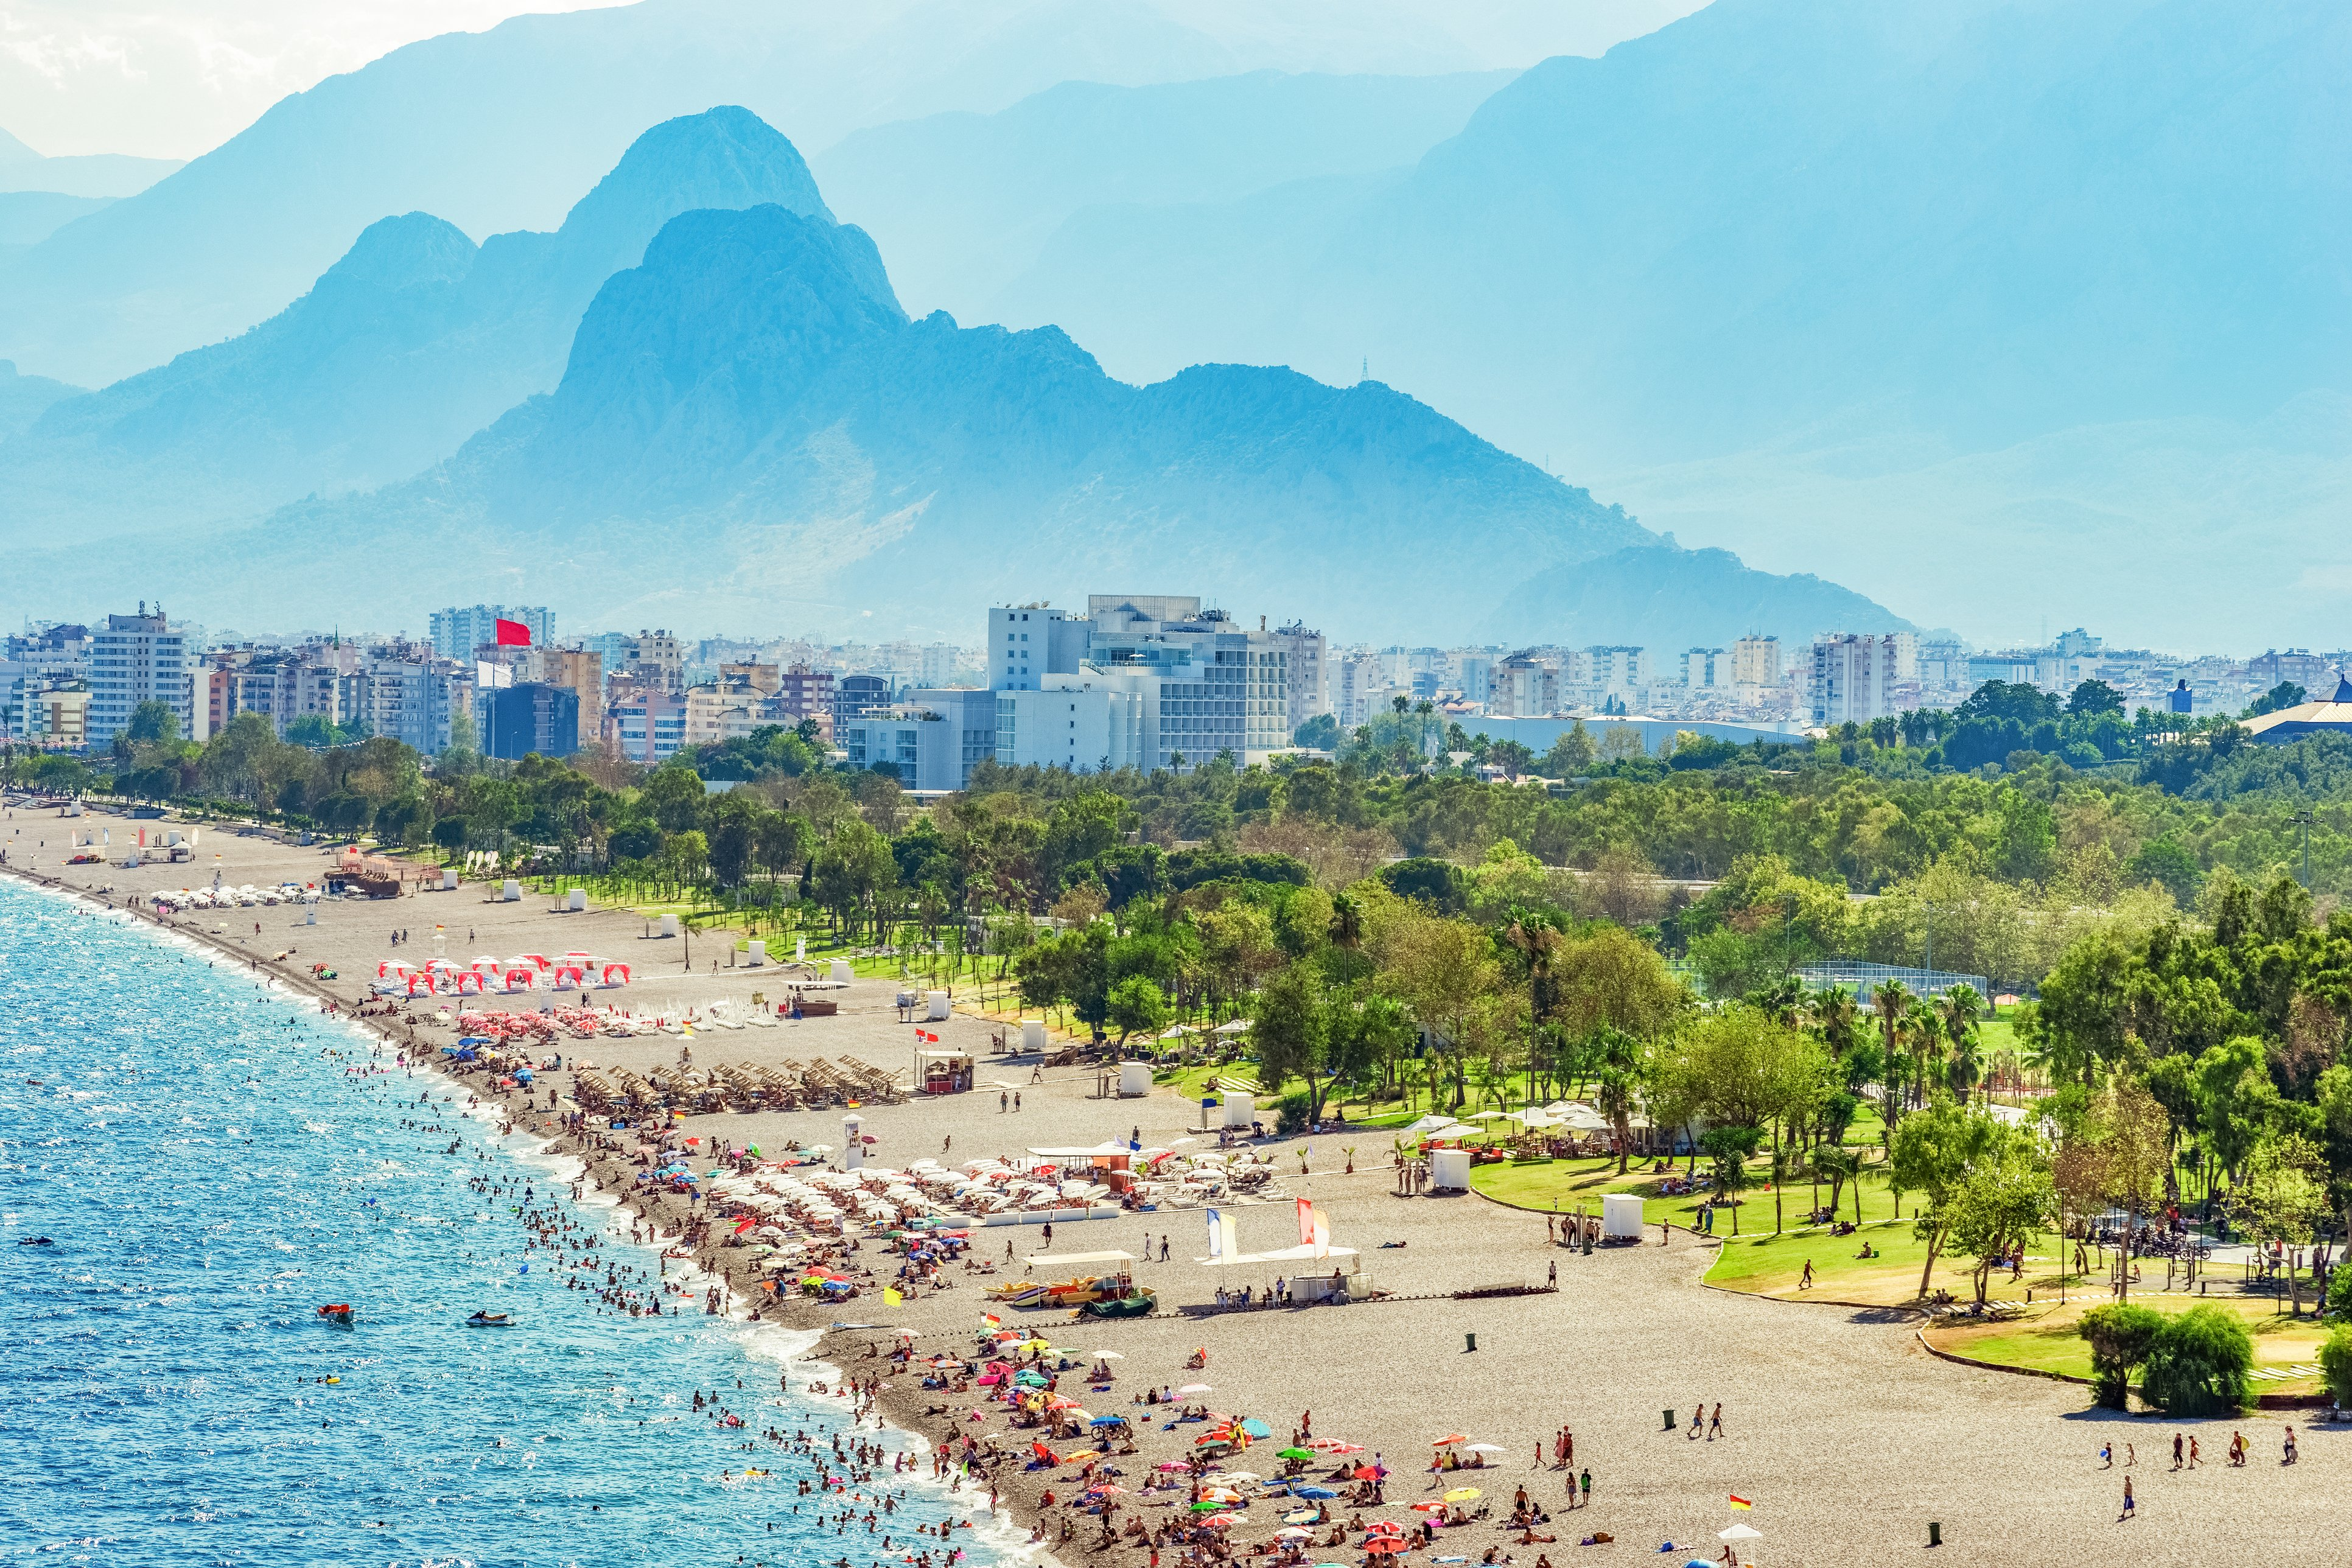 Splendid natural attractions in Antalya- The crowded beach